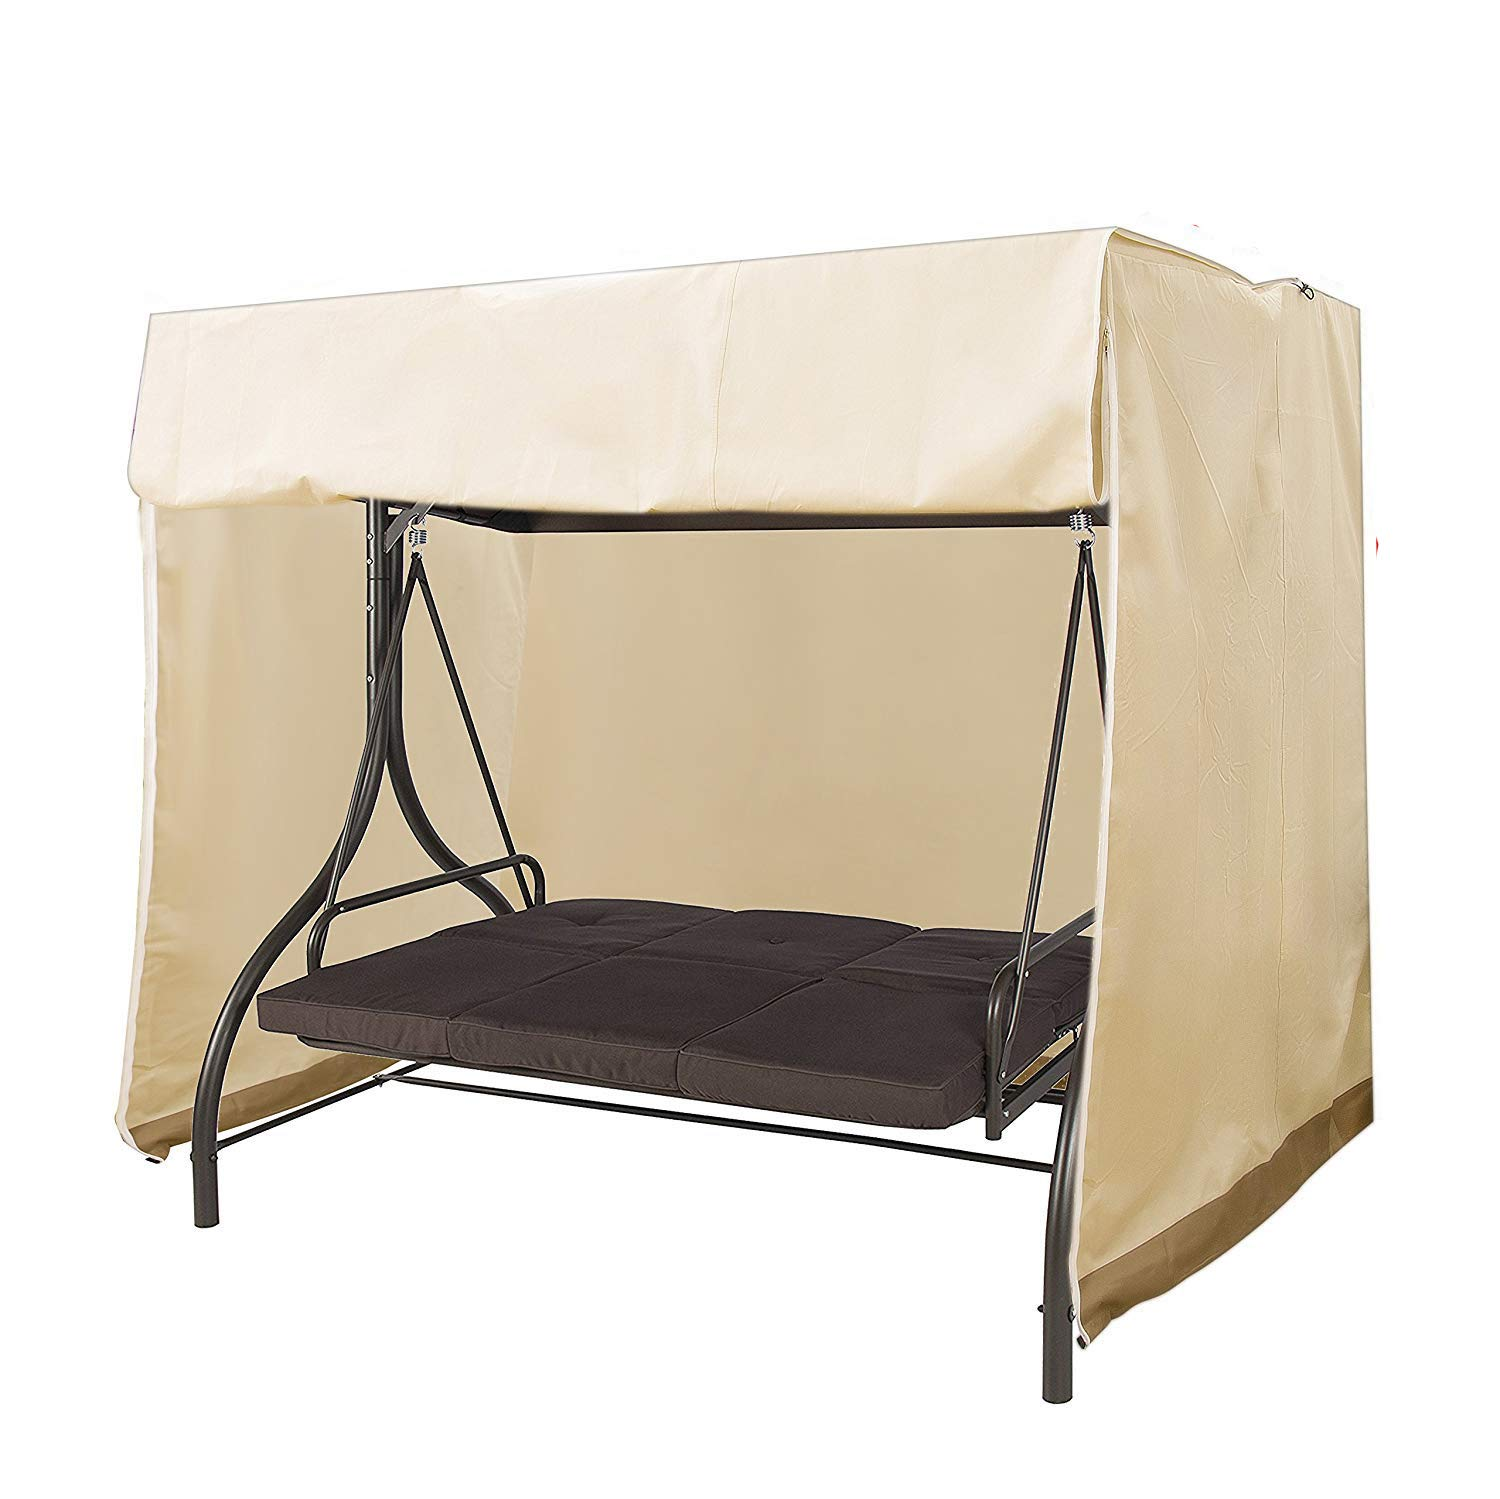 Mitef Waterproof and Dustproof Garden Swing Cover, Outdoor Furniture Protective Cover, 223x152x183cm/87.7'' x59.8 x72, Beige and Brown